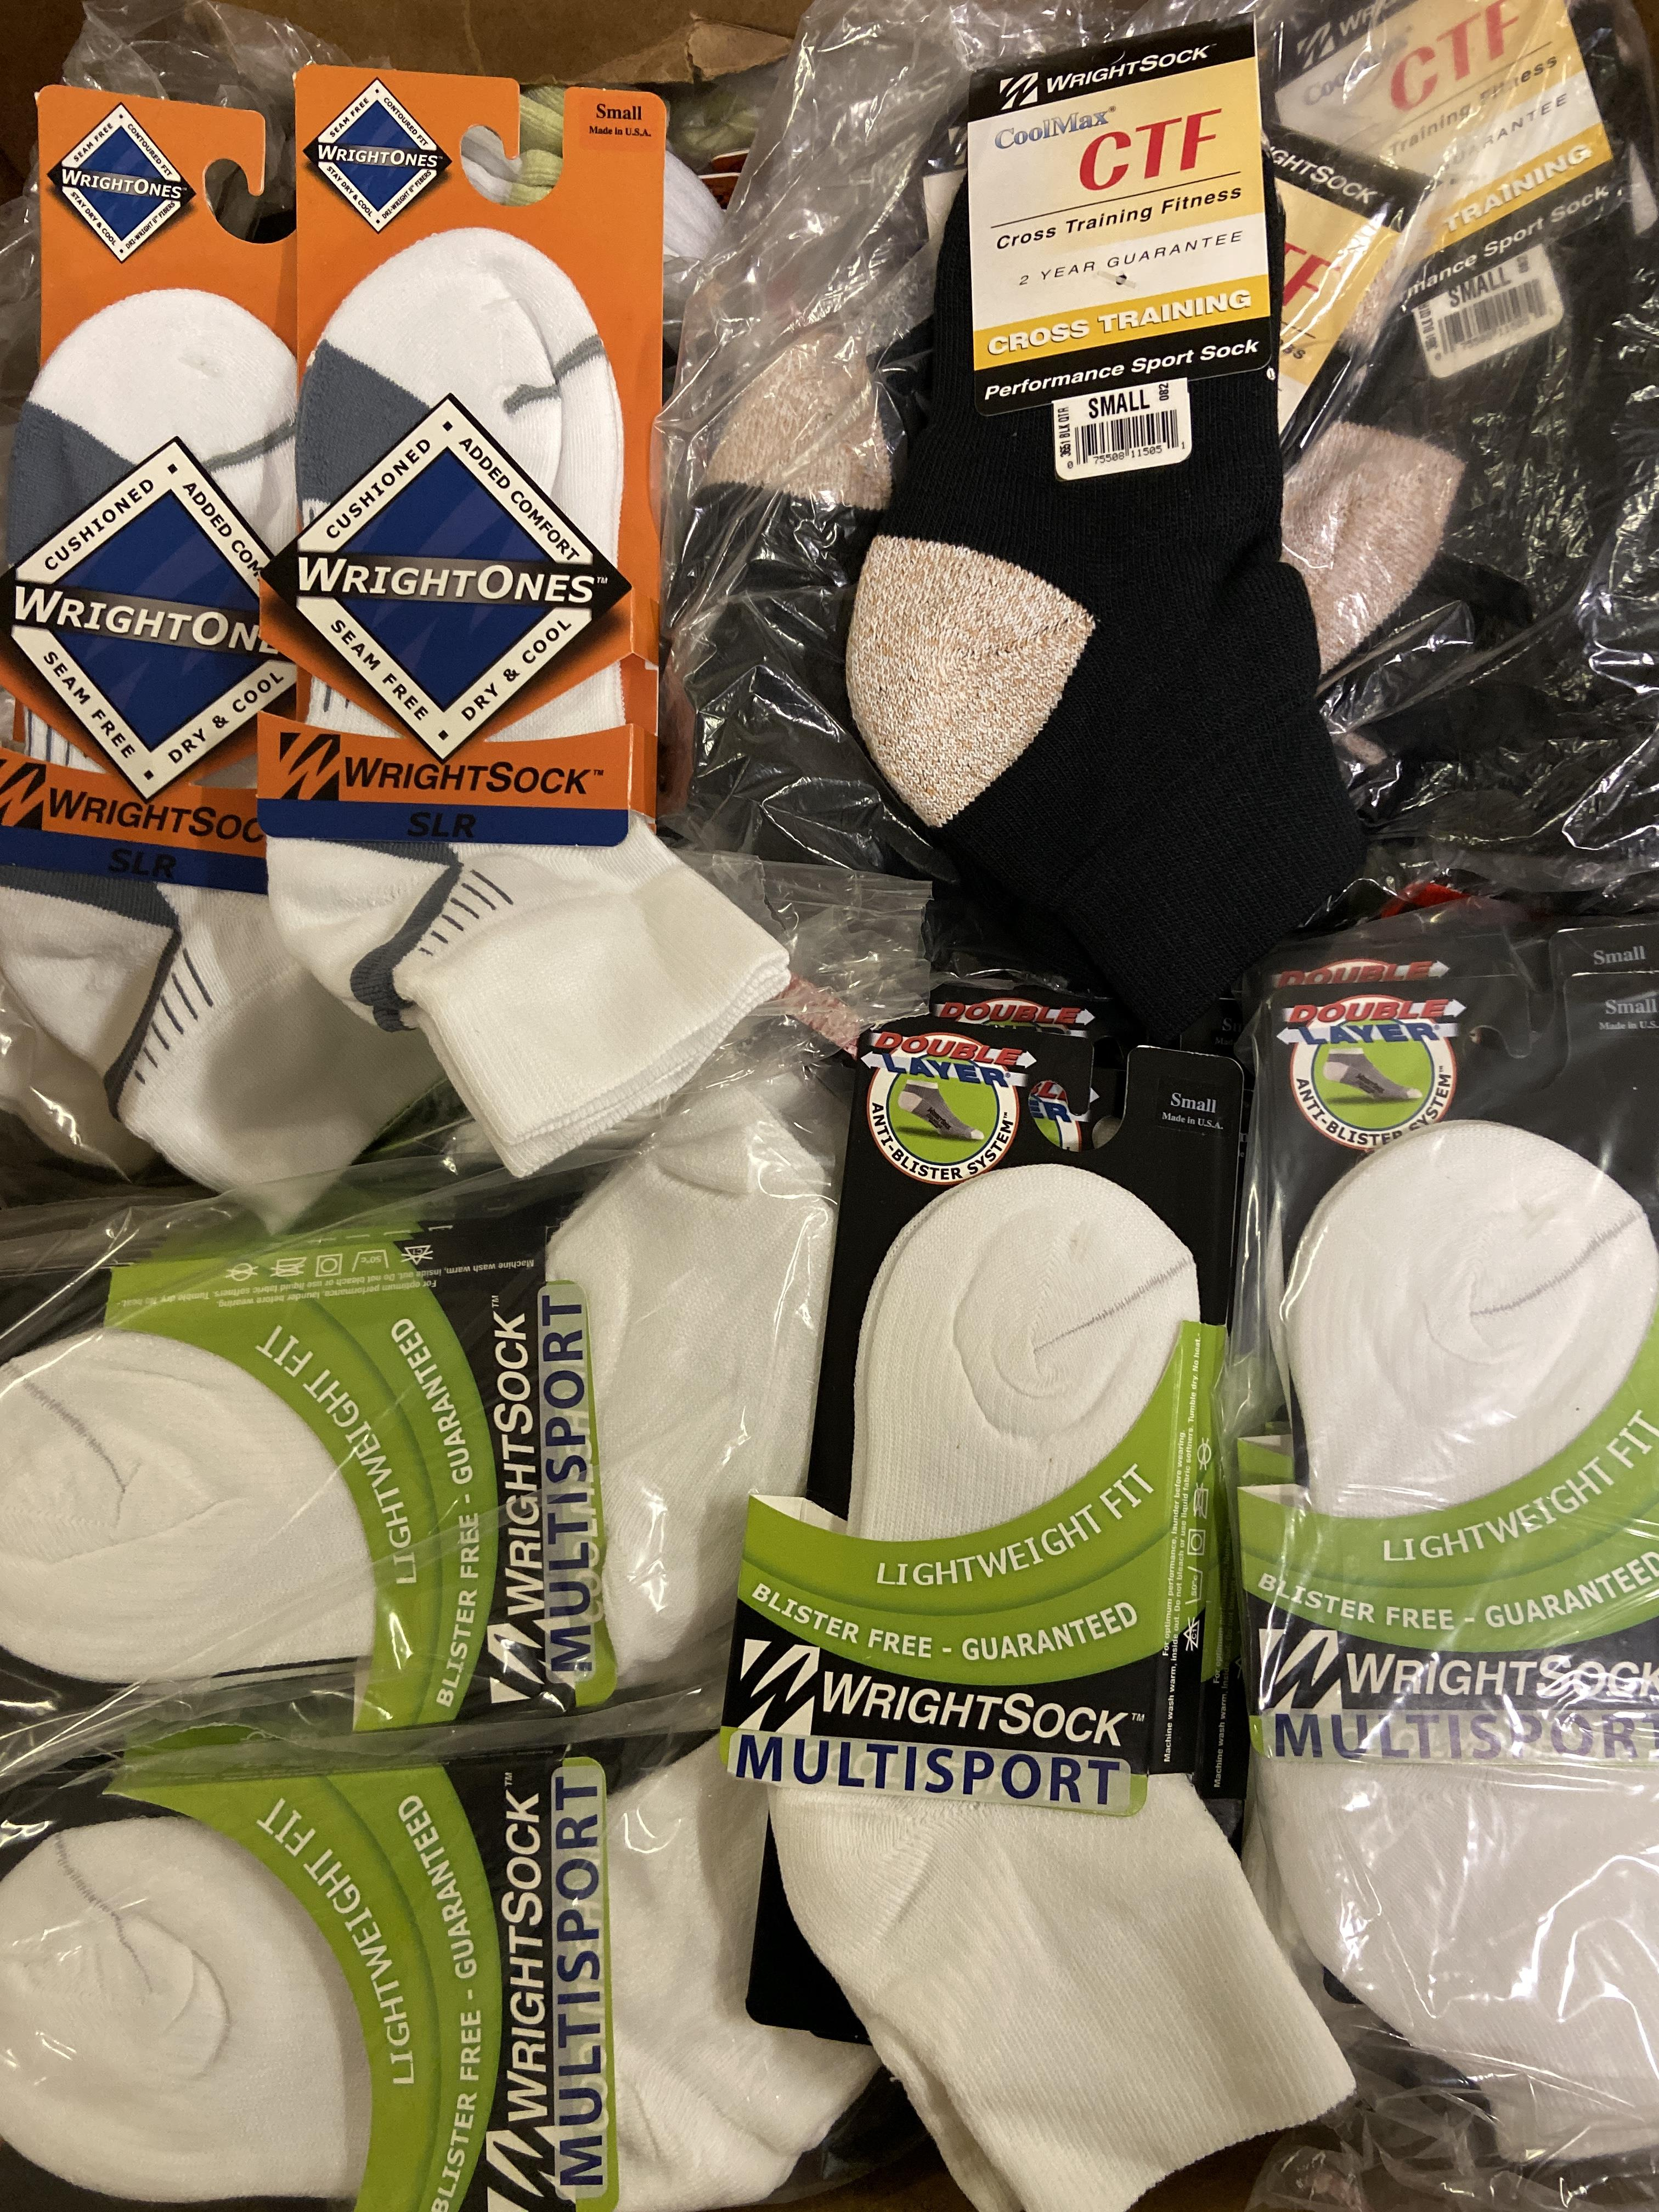 250+ packs of New Socks, Wrightsock Various Styles, Various Colors - Image 2 of 3